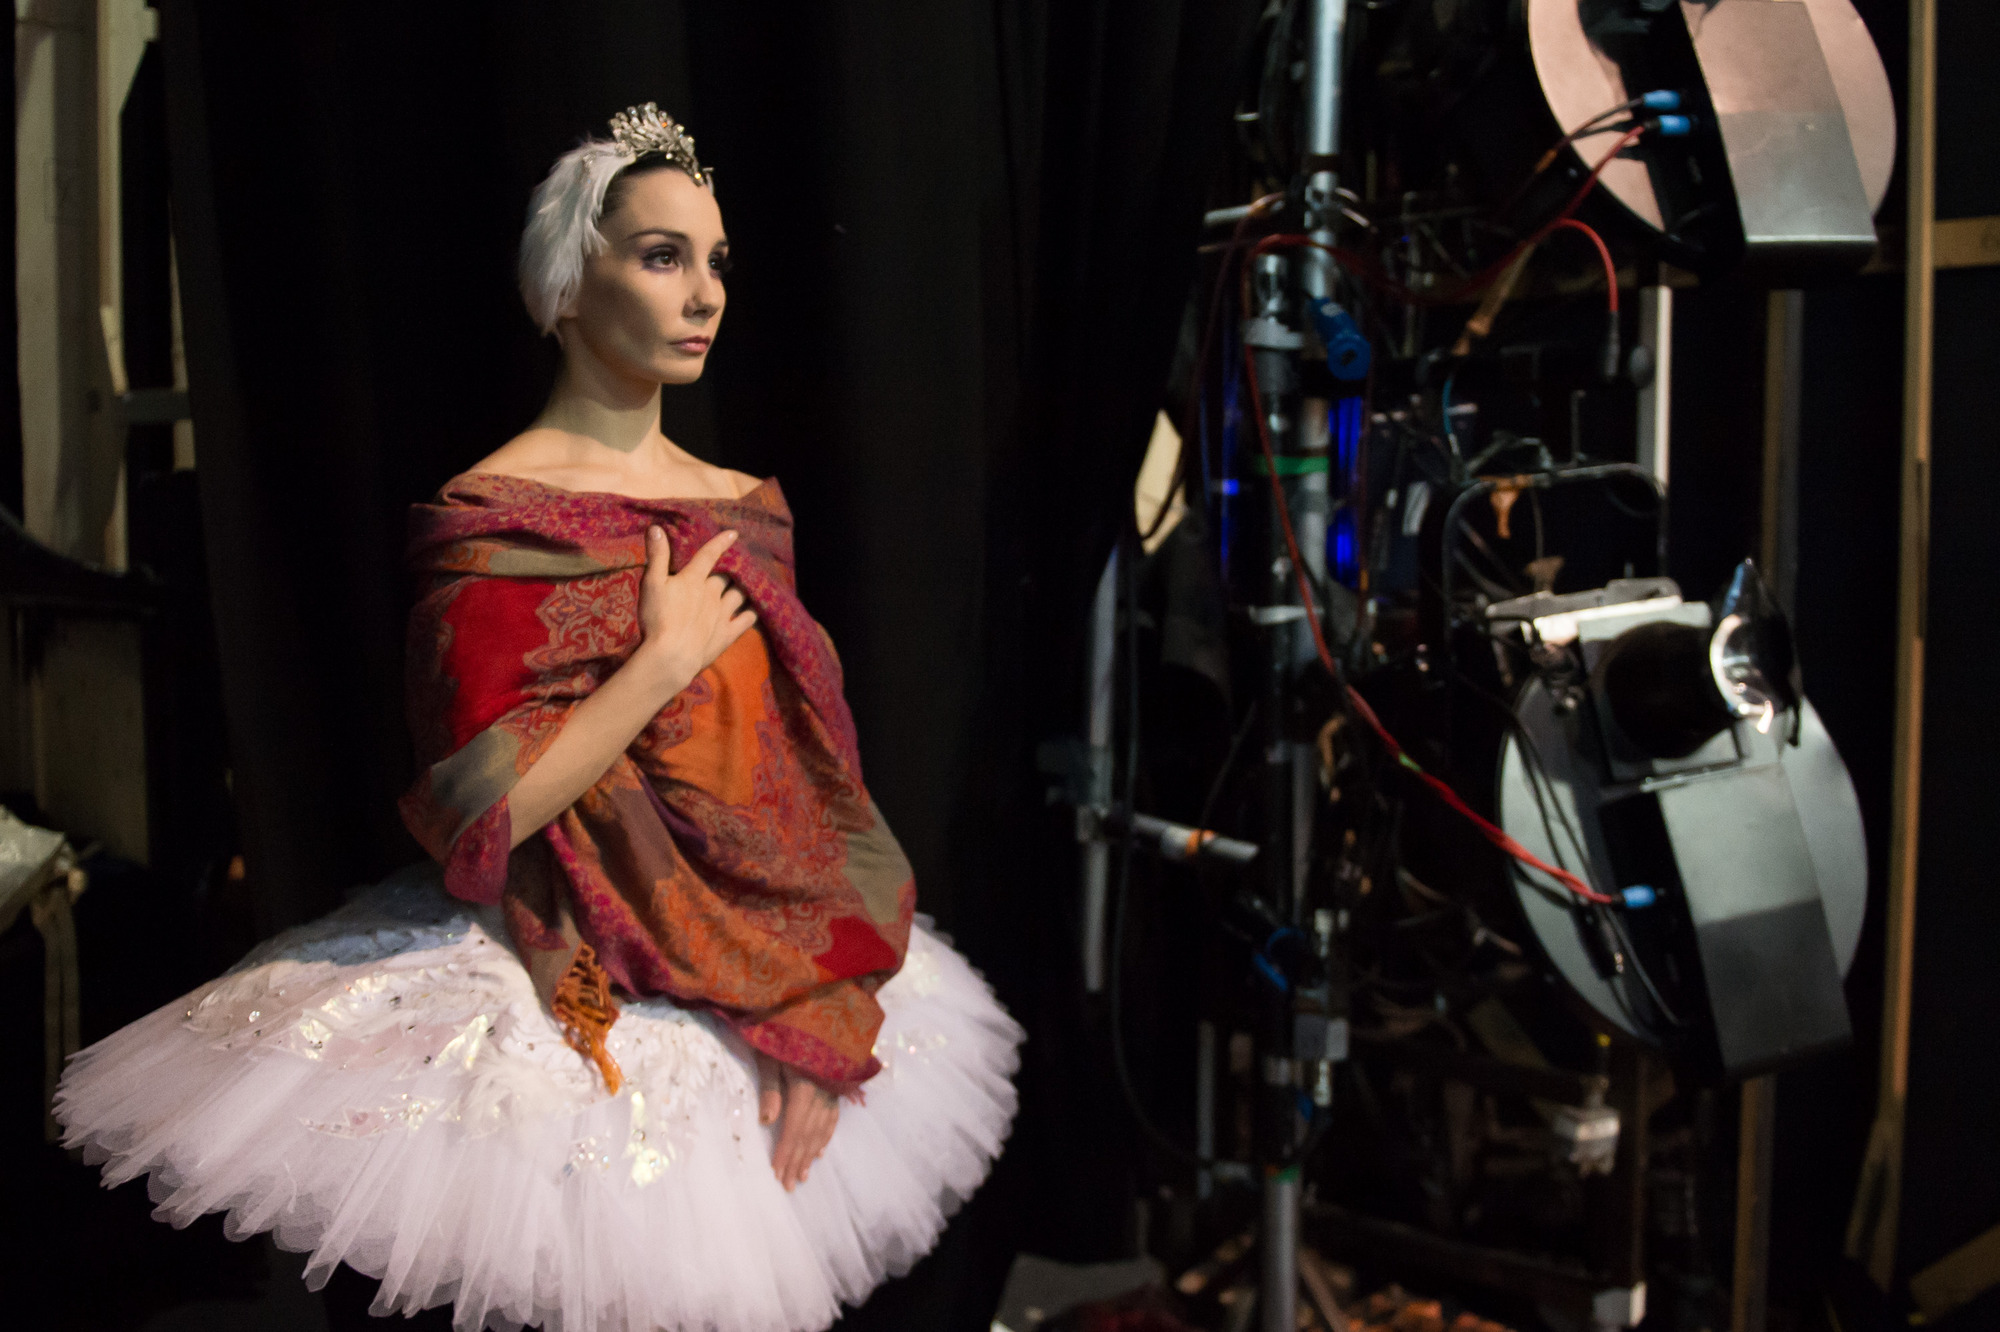 pictured - tamara rojo, director and principal dancer of English national ballet